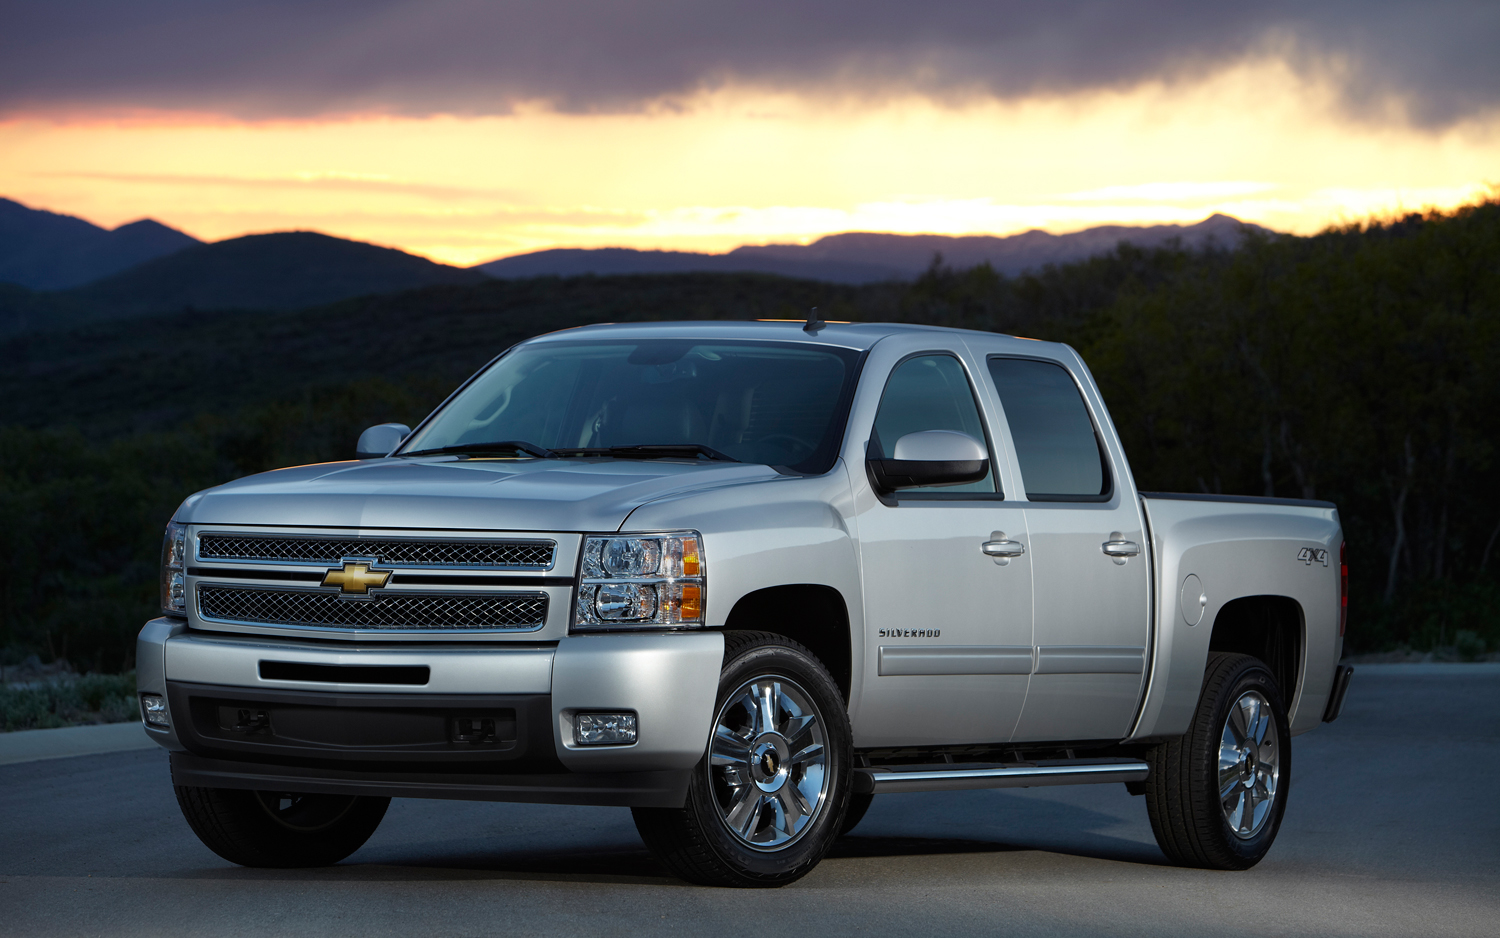 Gm 2012 Sales Chevrolet Silverado Volt End Strong Gm Sells One